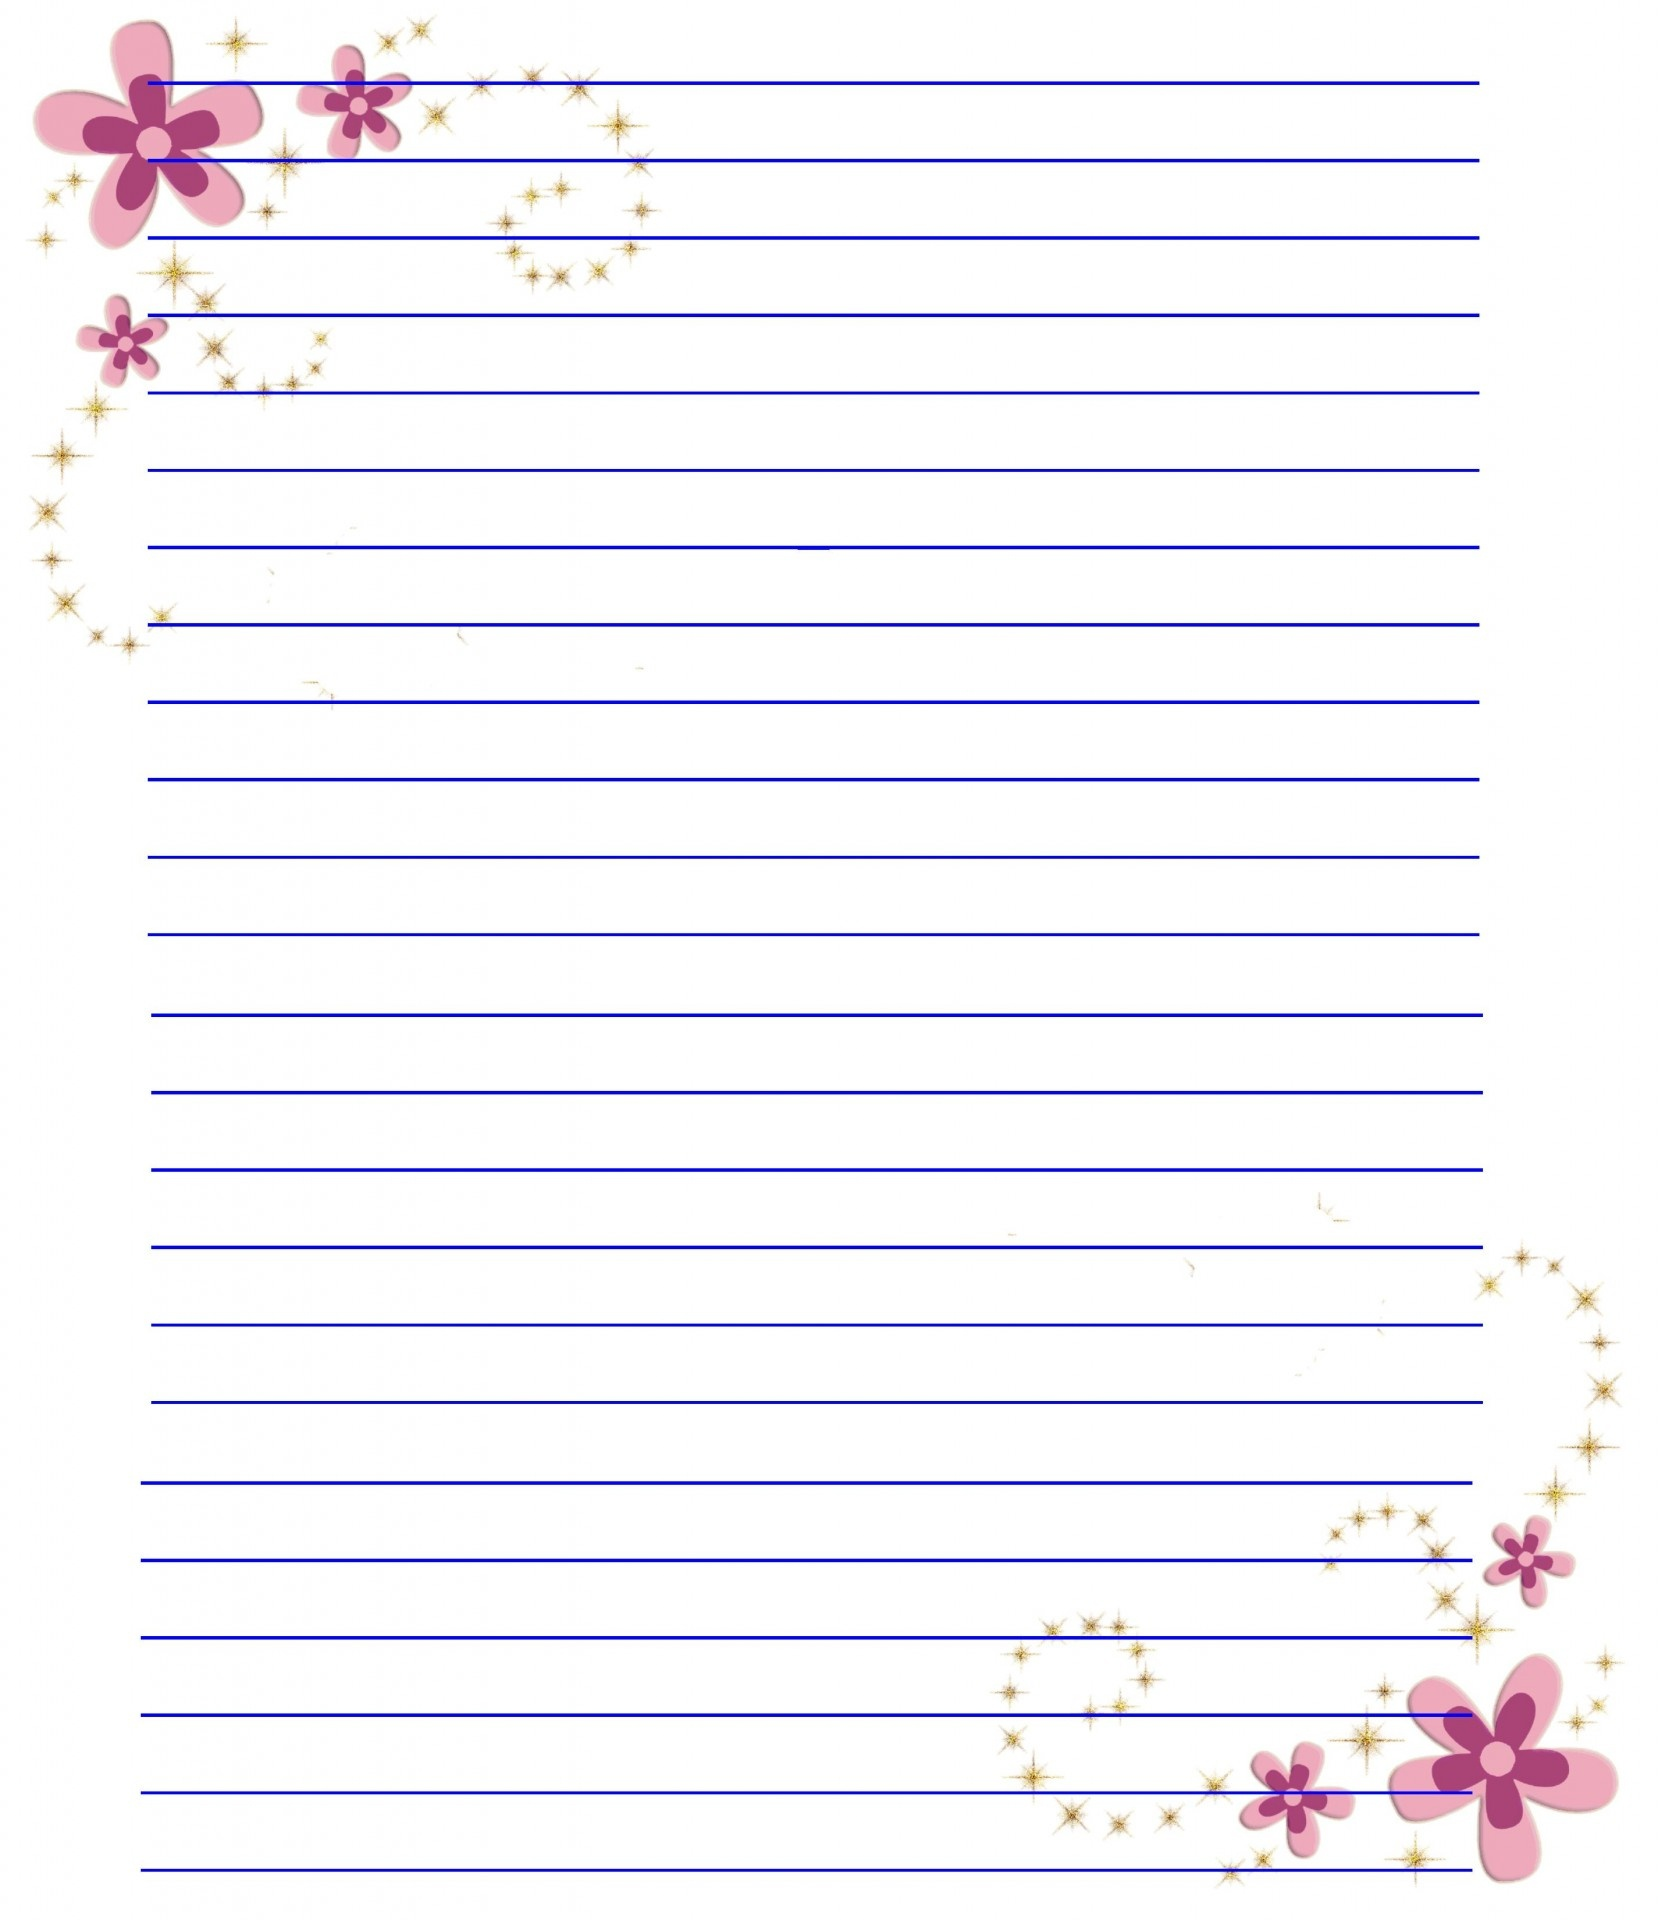 Free Printable Stationery Paper With Lines - Kaza.psstech.co - Free Printable Stationary With Lines